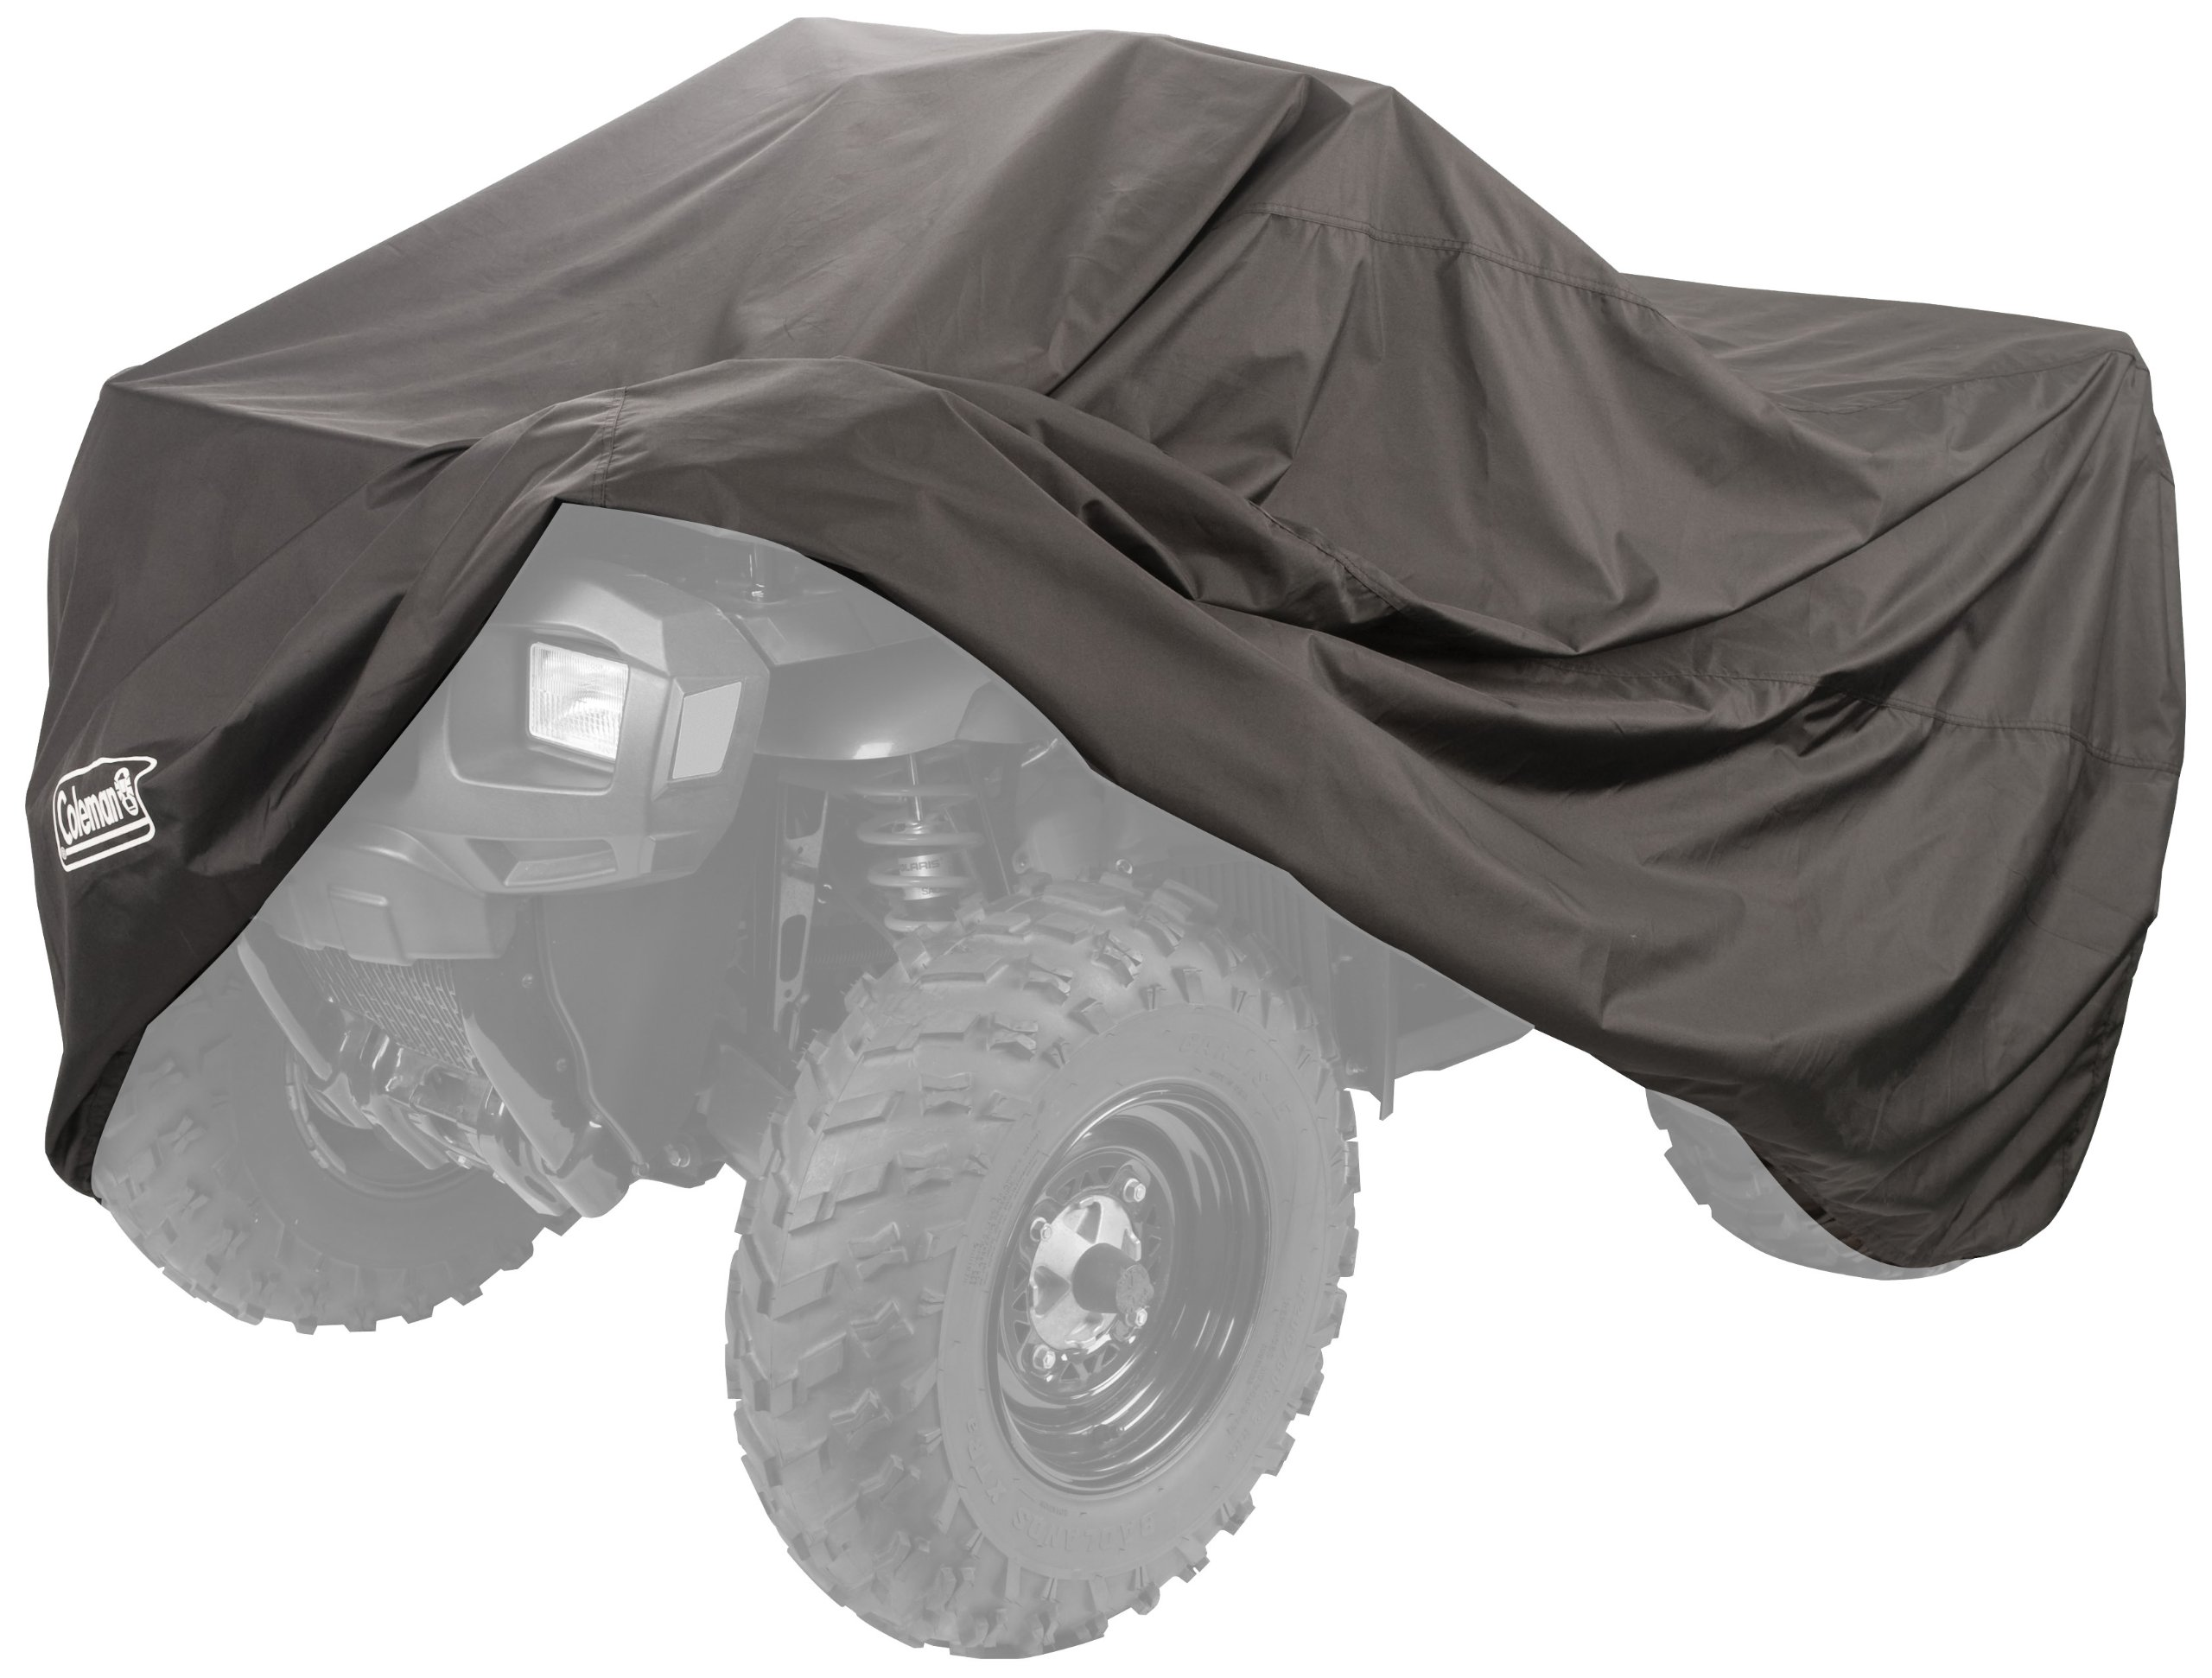 Coleman MadDog GearAll Weather Protection ATV Cover - 2000007483, Black by Coleman